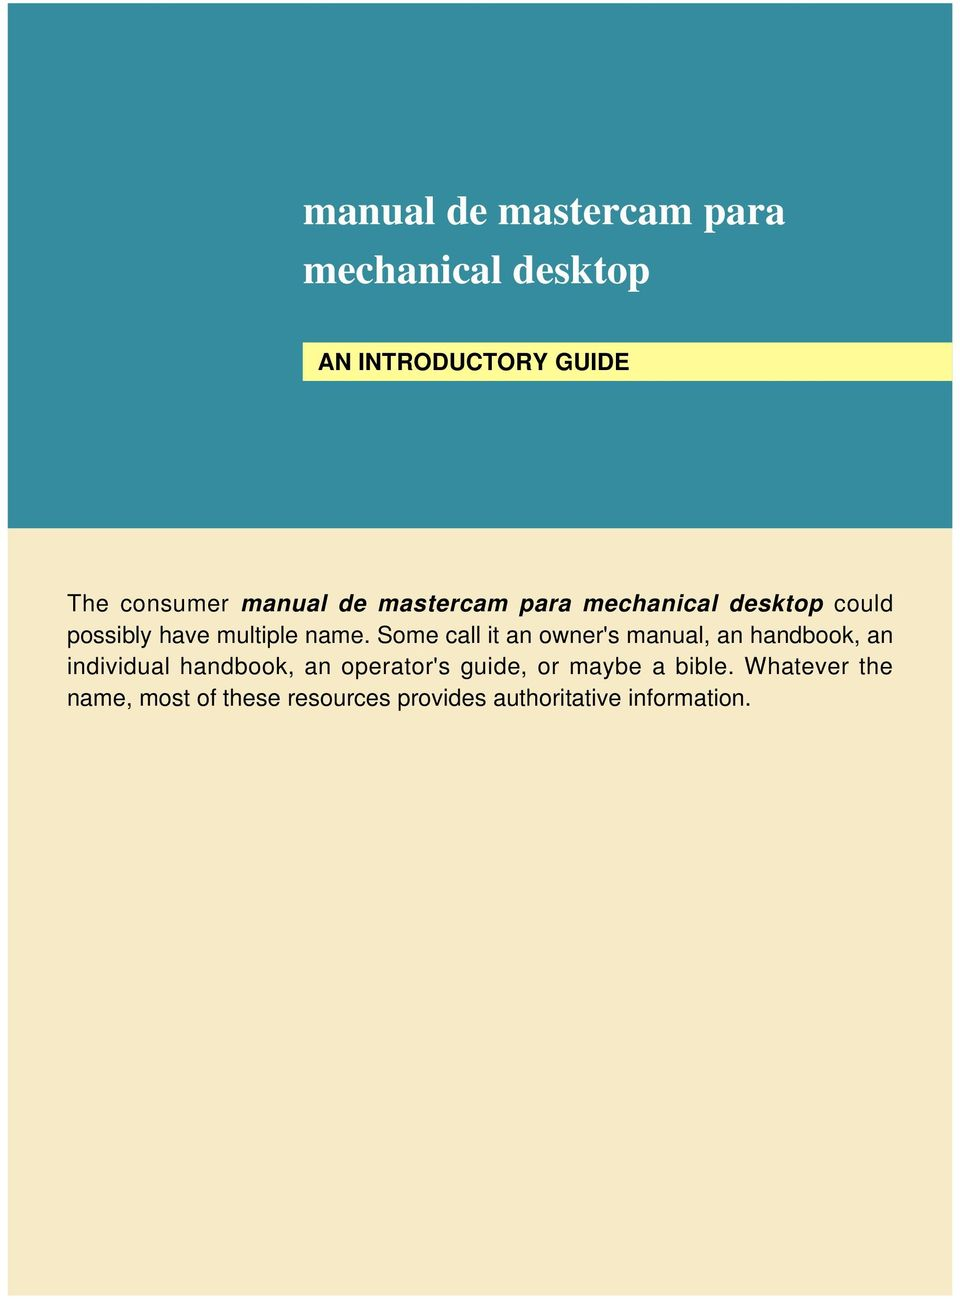 Some call it an owner's manual, an handbook, an individual handbook, an